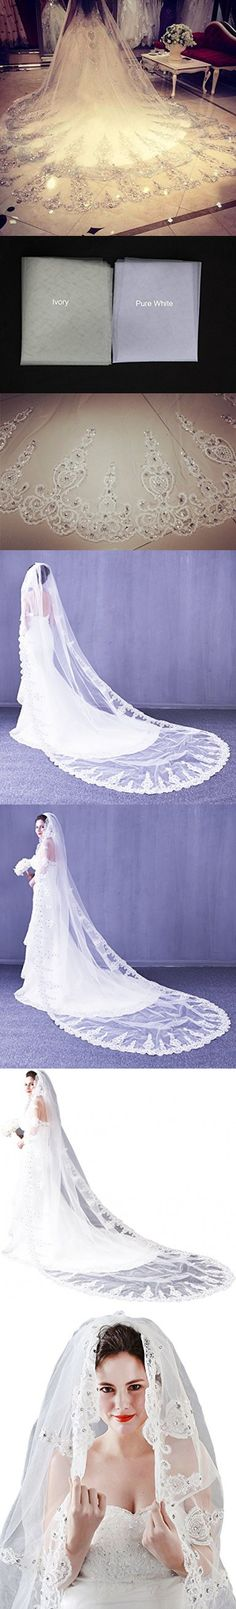 Leekida Ivory Long Cathedral Crystal Wedding Veils with Free Comb